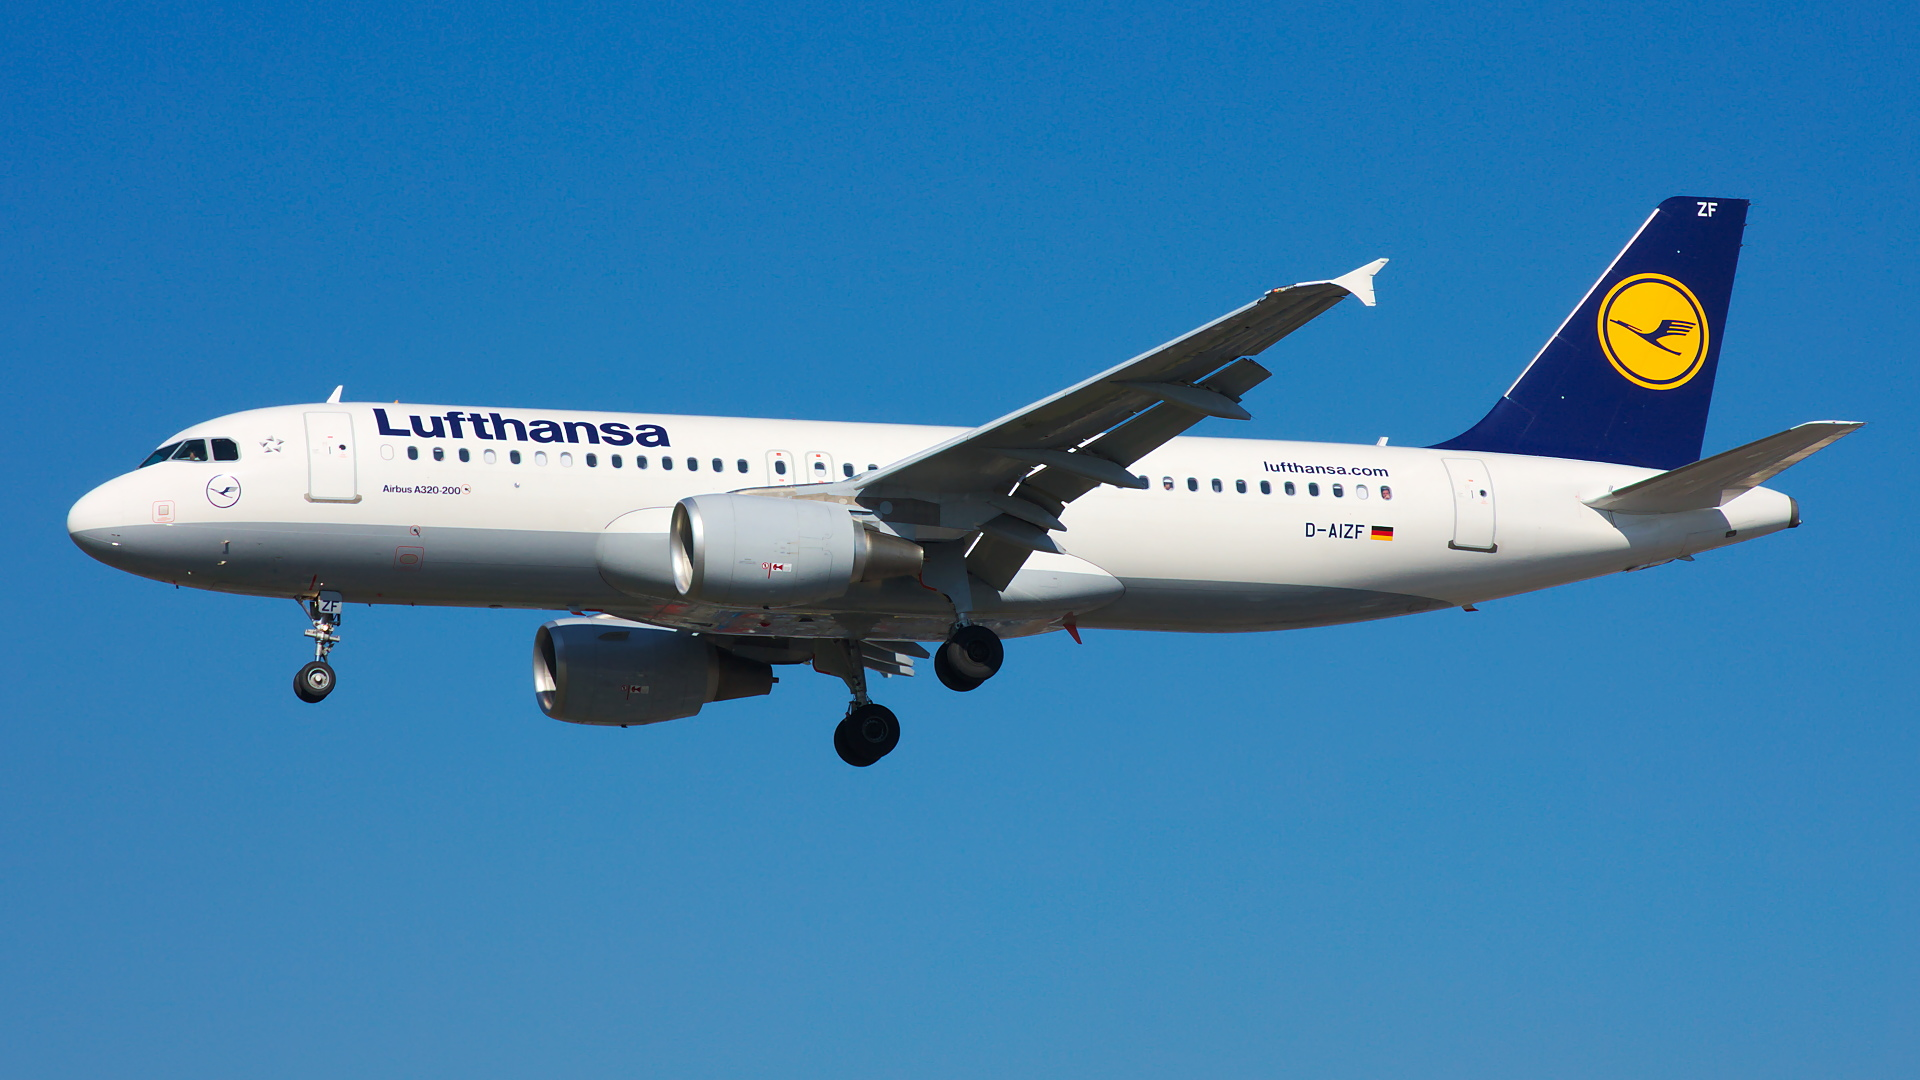 D-AIZF ✈ Lufthansa Airbus A320-214 @ London-Heathrow